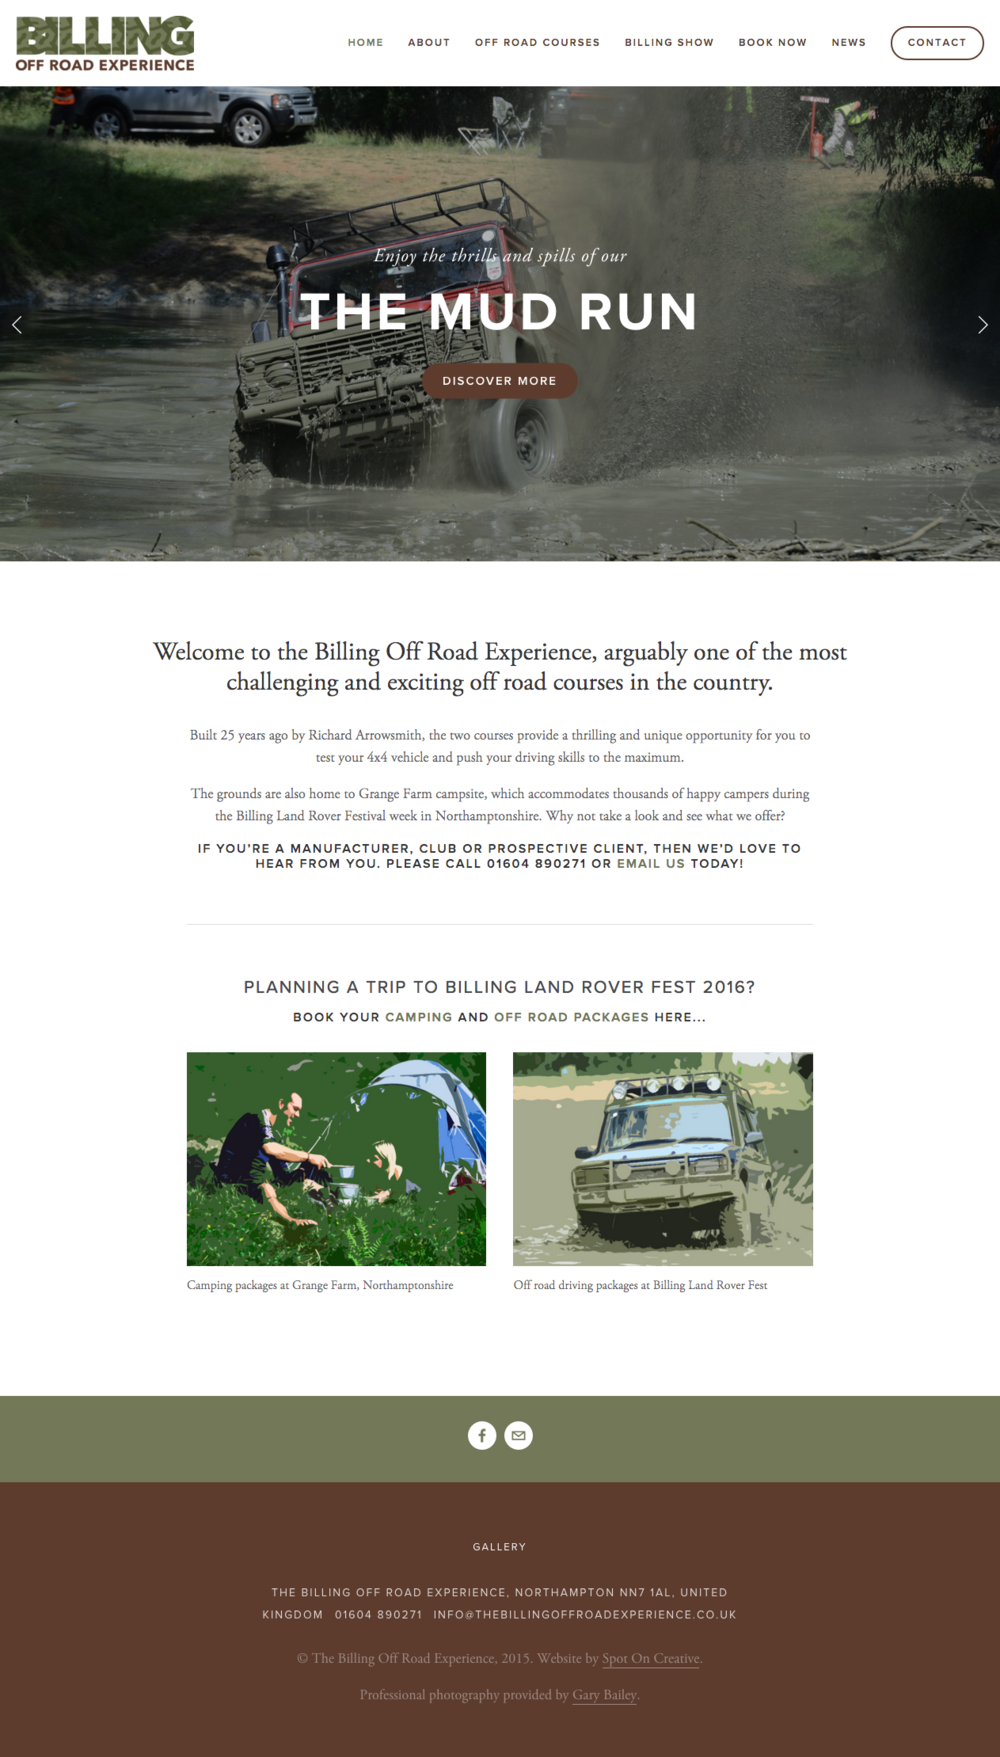 The Billing Off Road Experience - Home 3.png